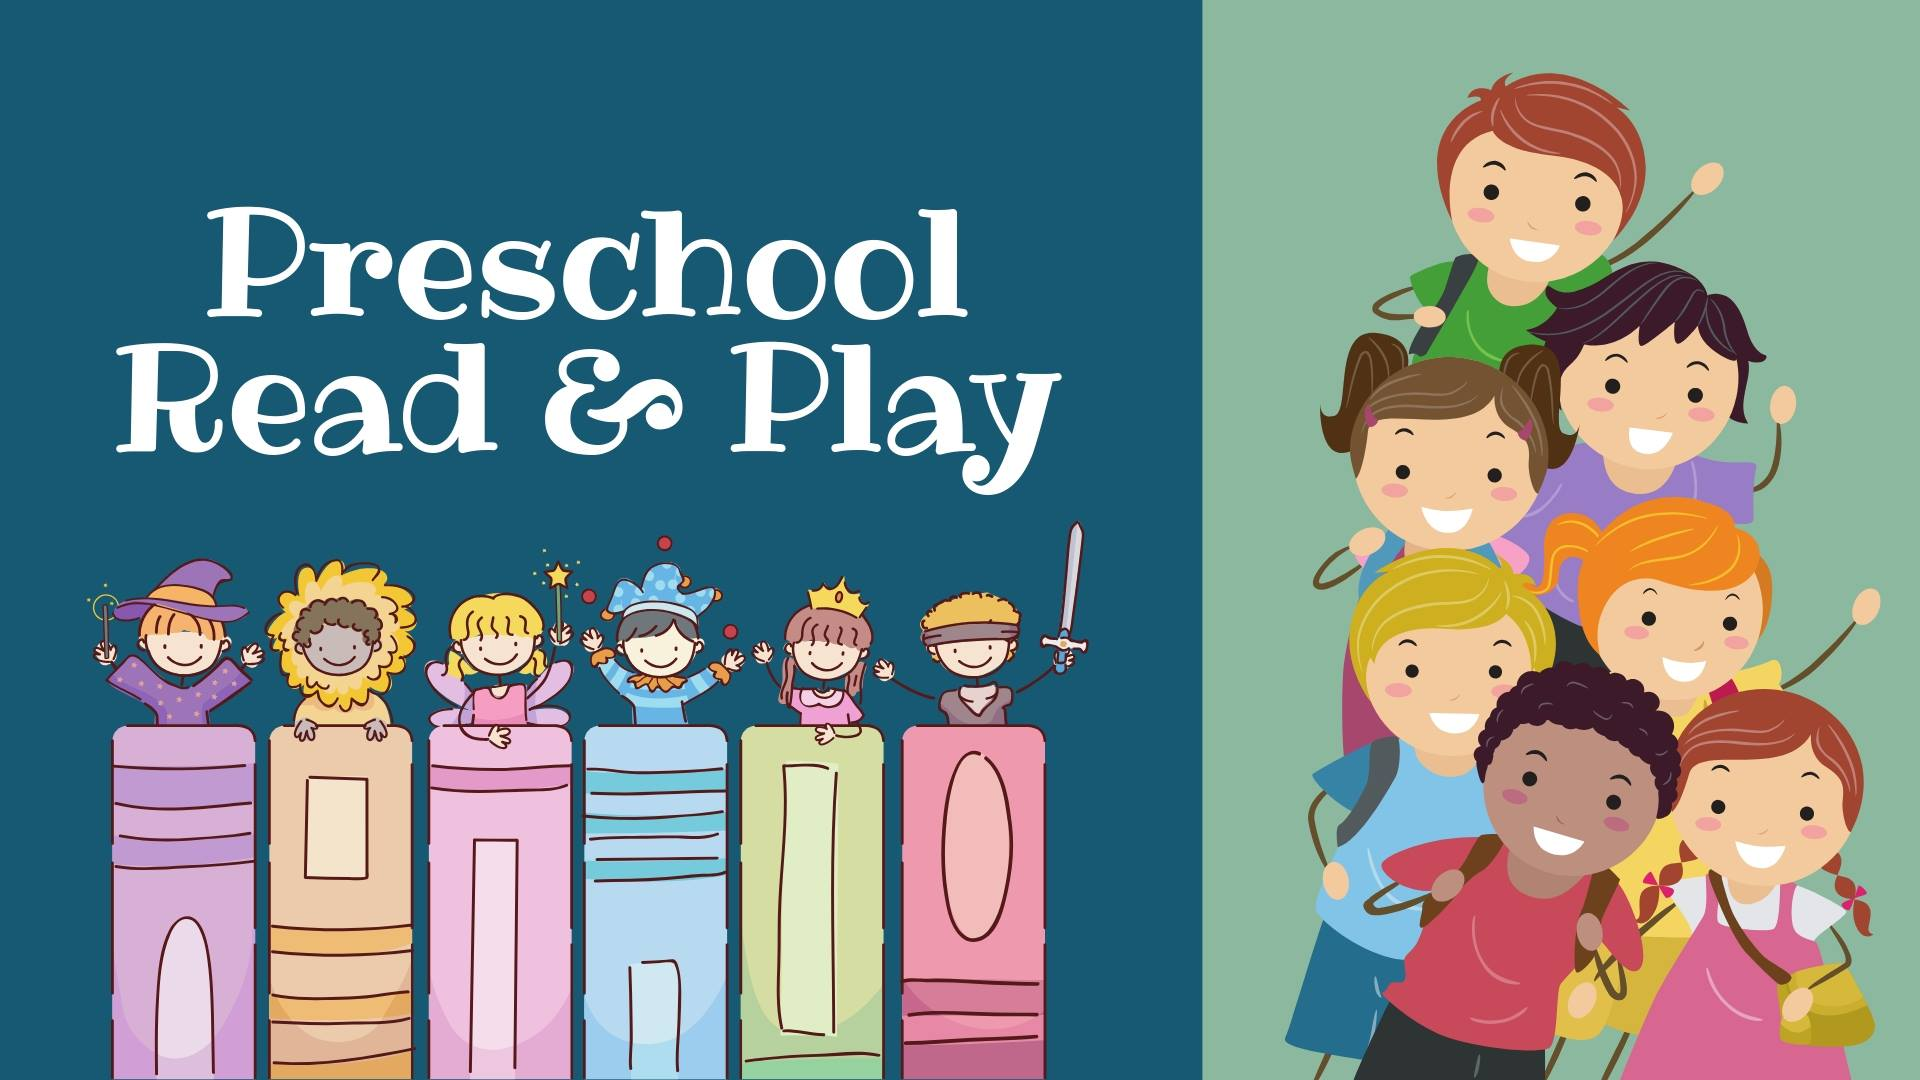 Preschool Read & Play